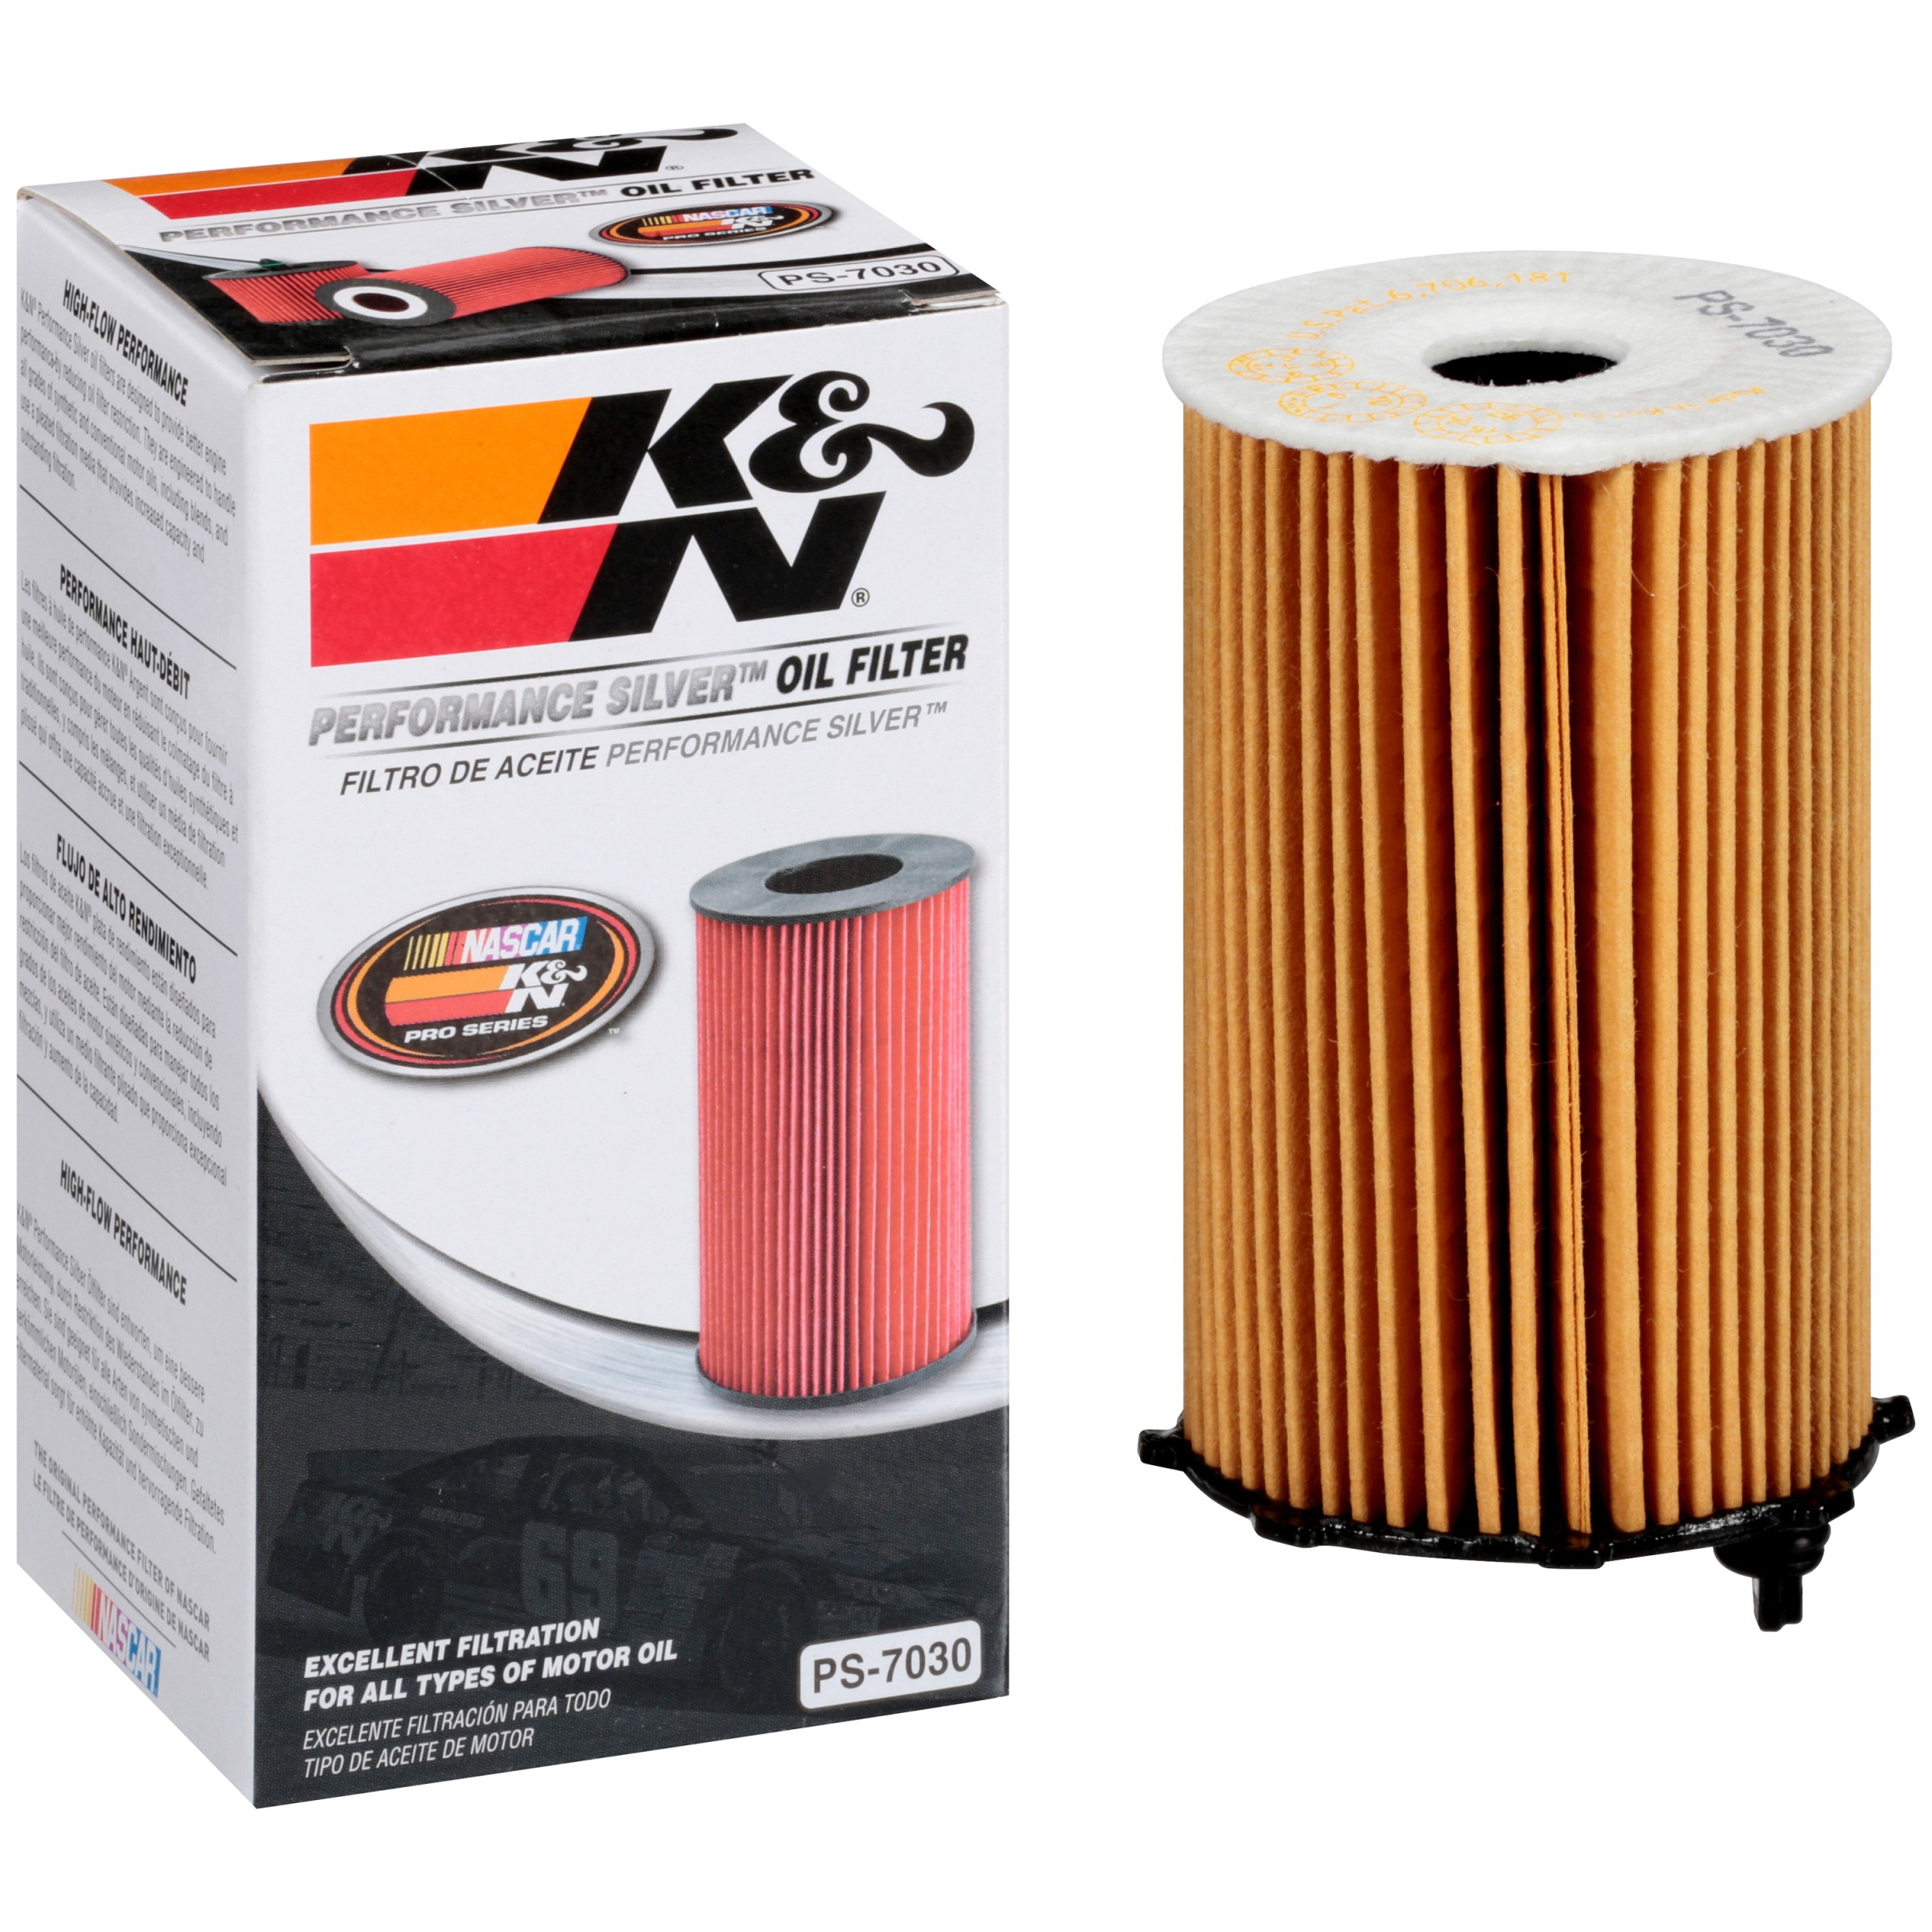 K&N® Performance Silver™ PS-7030 Oil Filter Box